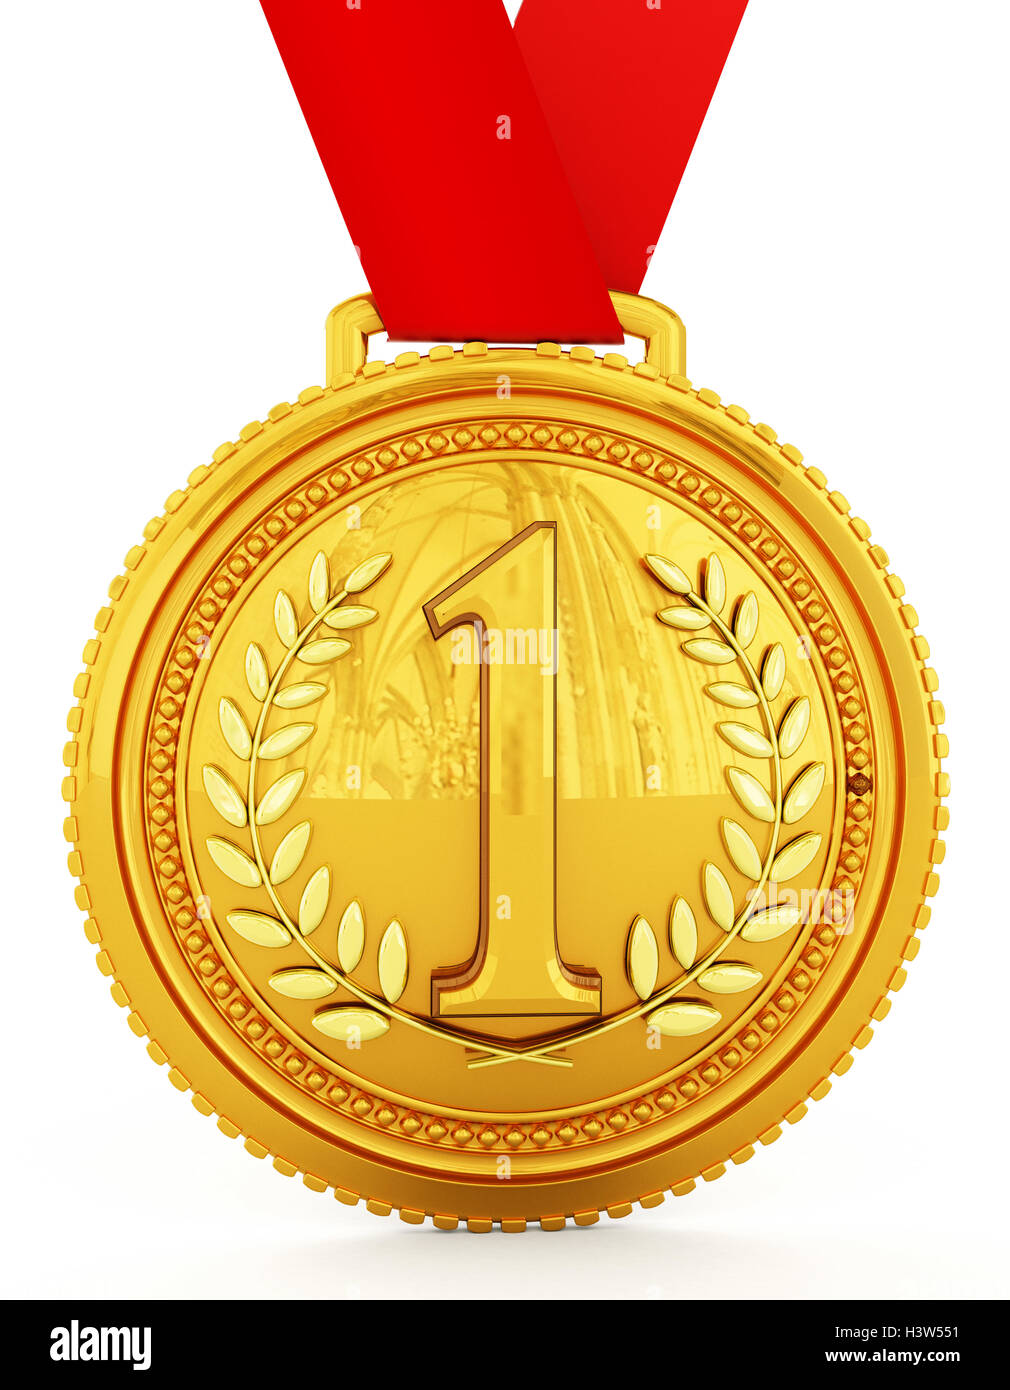 Gold medal with number one. 3D illustration. - Stock Image